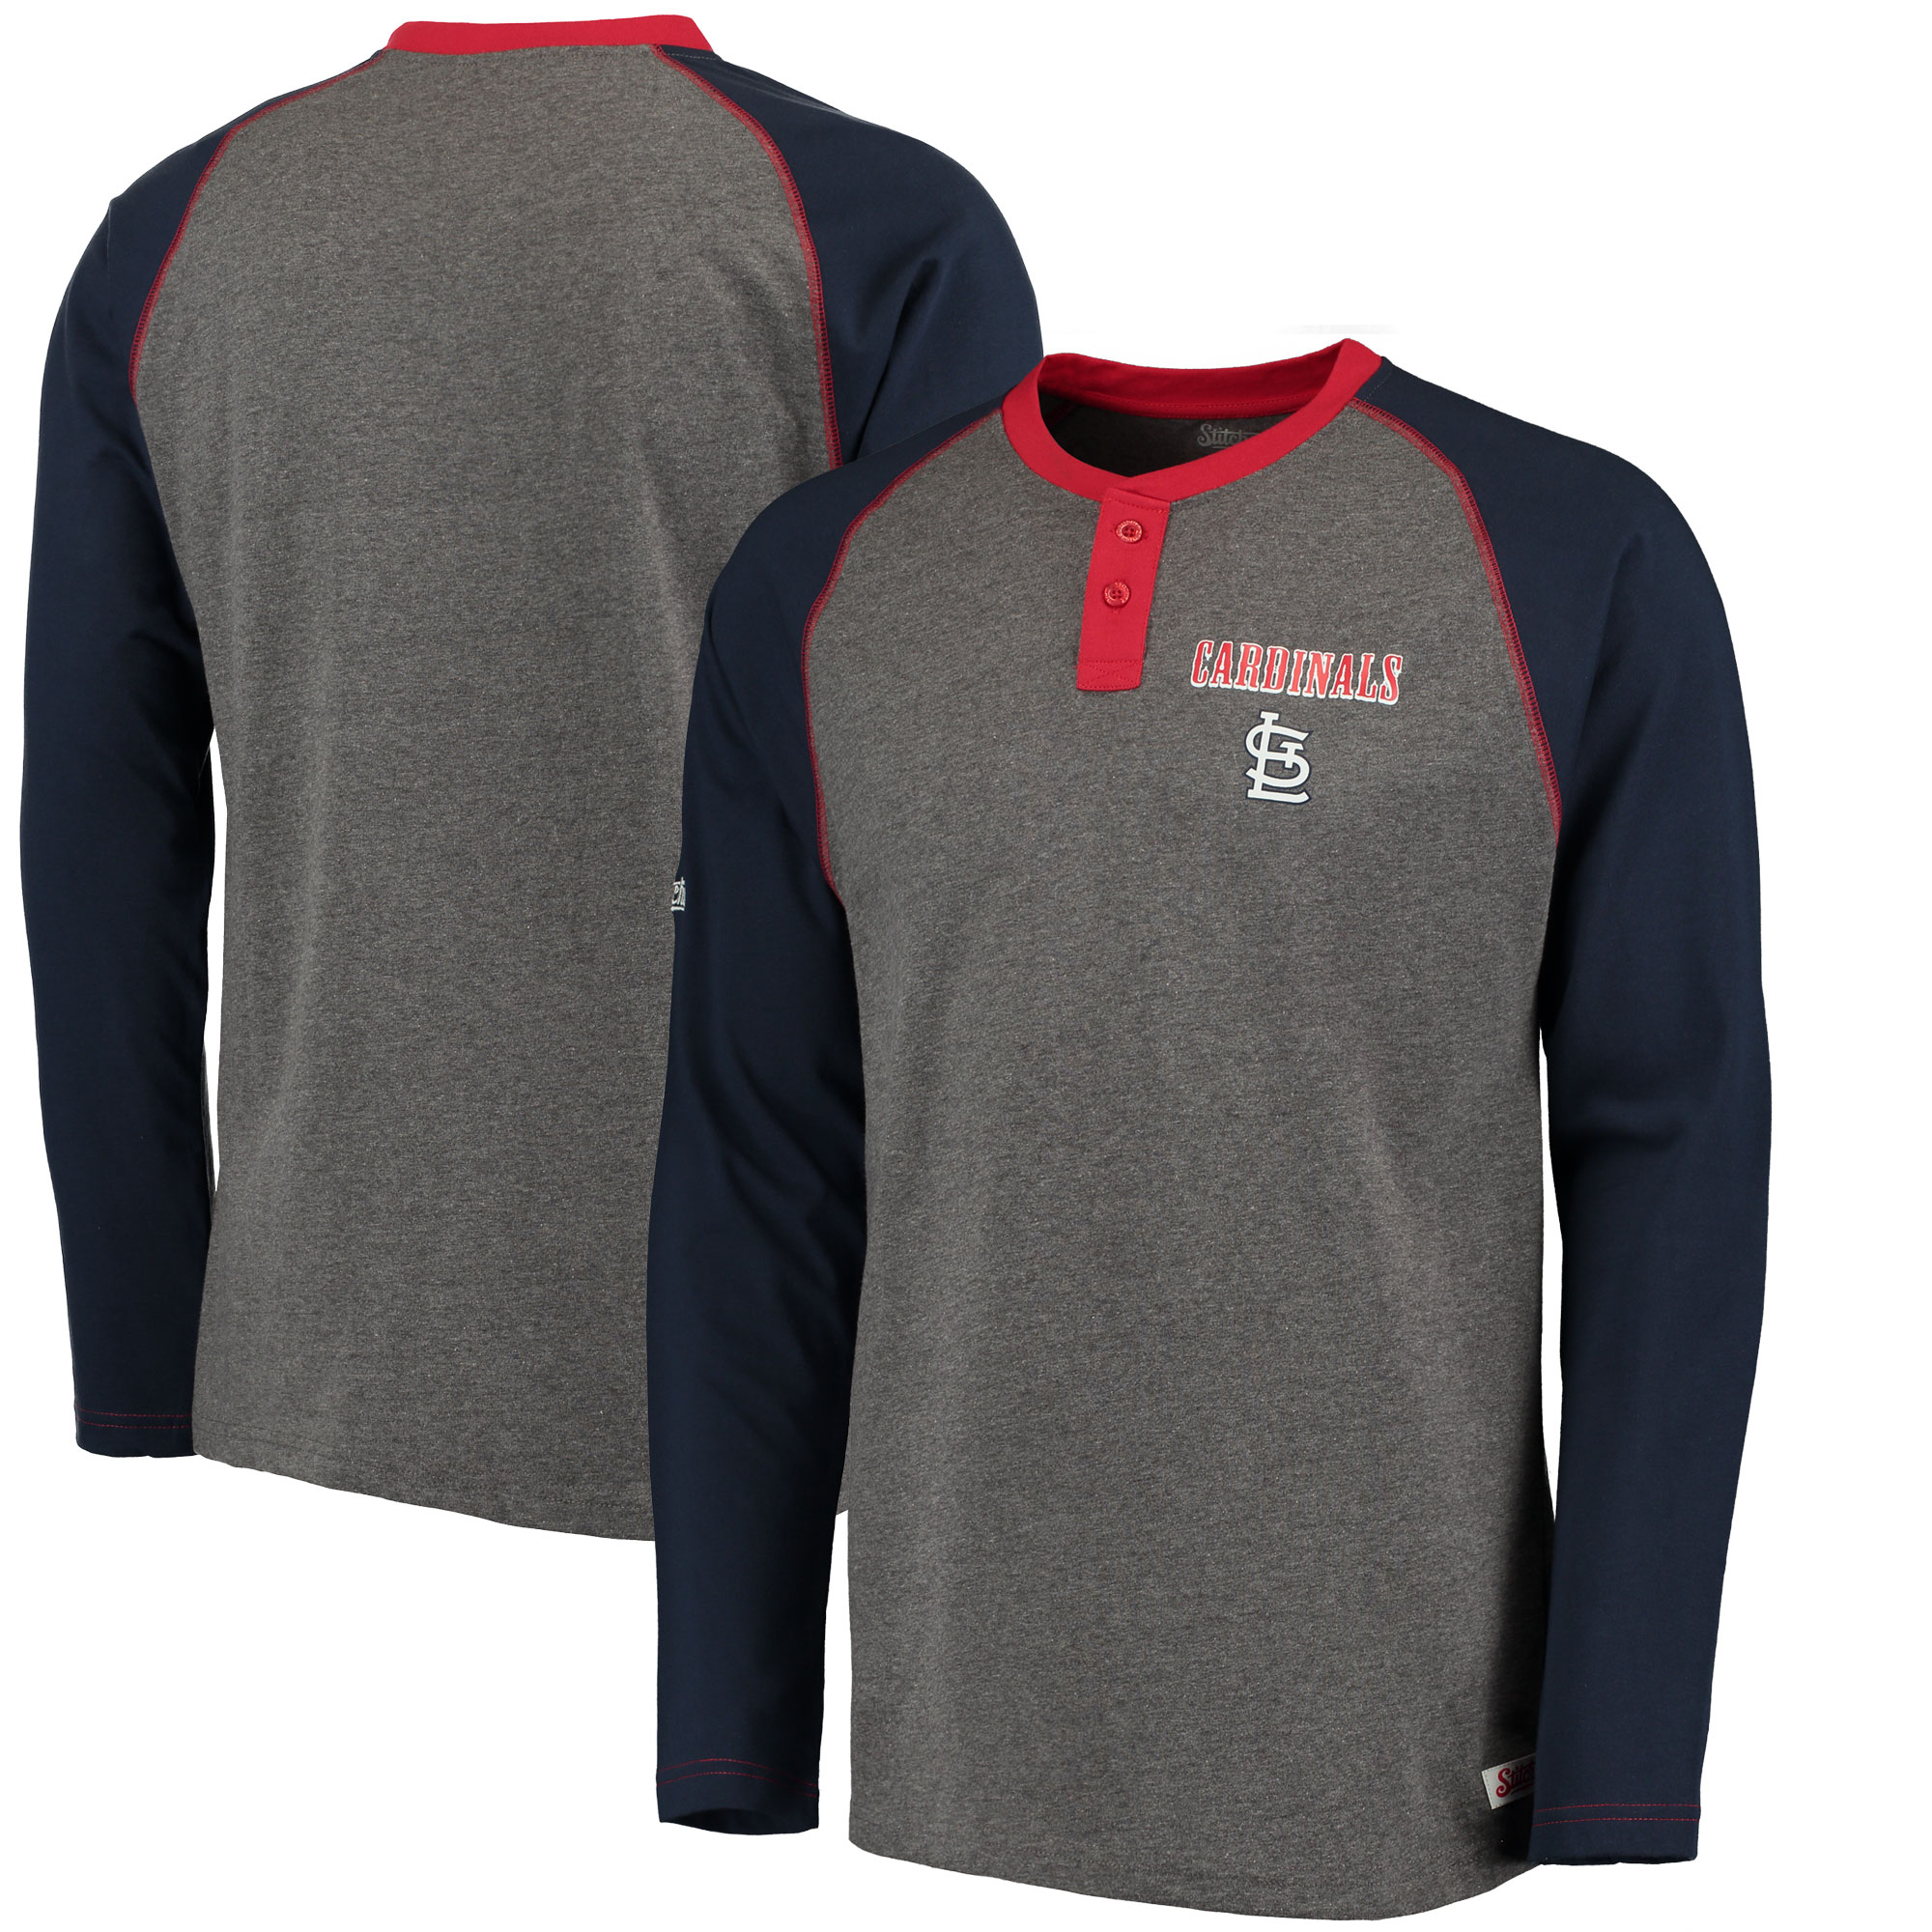 Men's Stitches Heathered Gray/Navy St. Louis Cardinals Home Run Long Sleeve Henley T-Shirt